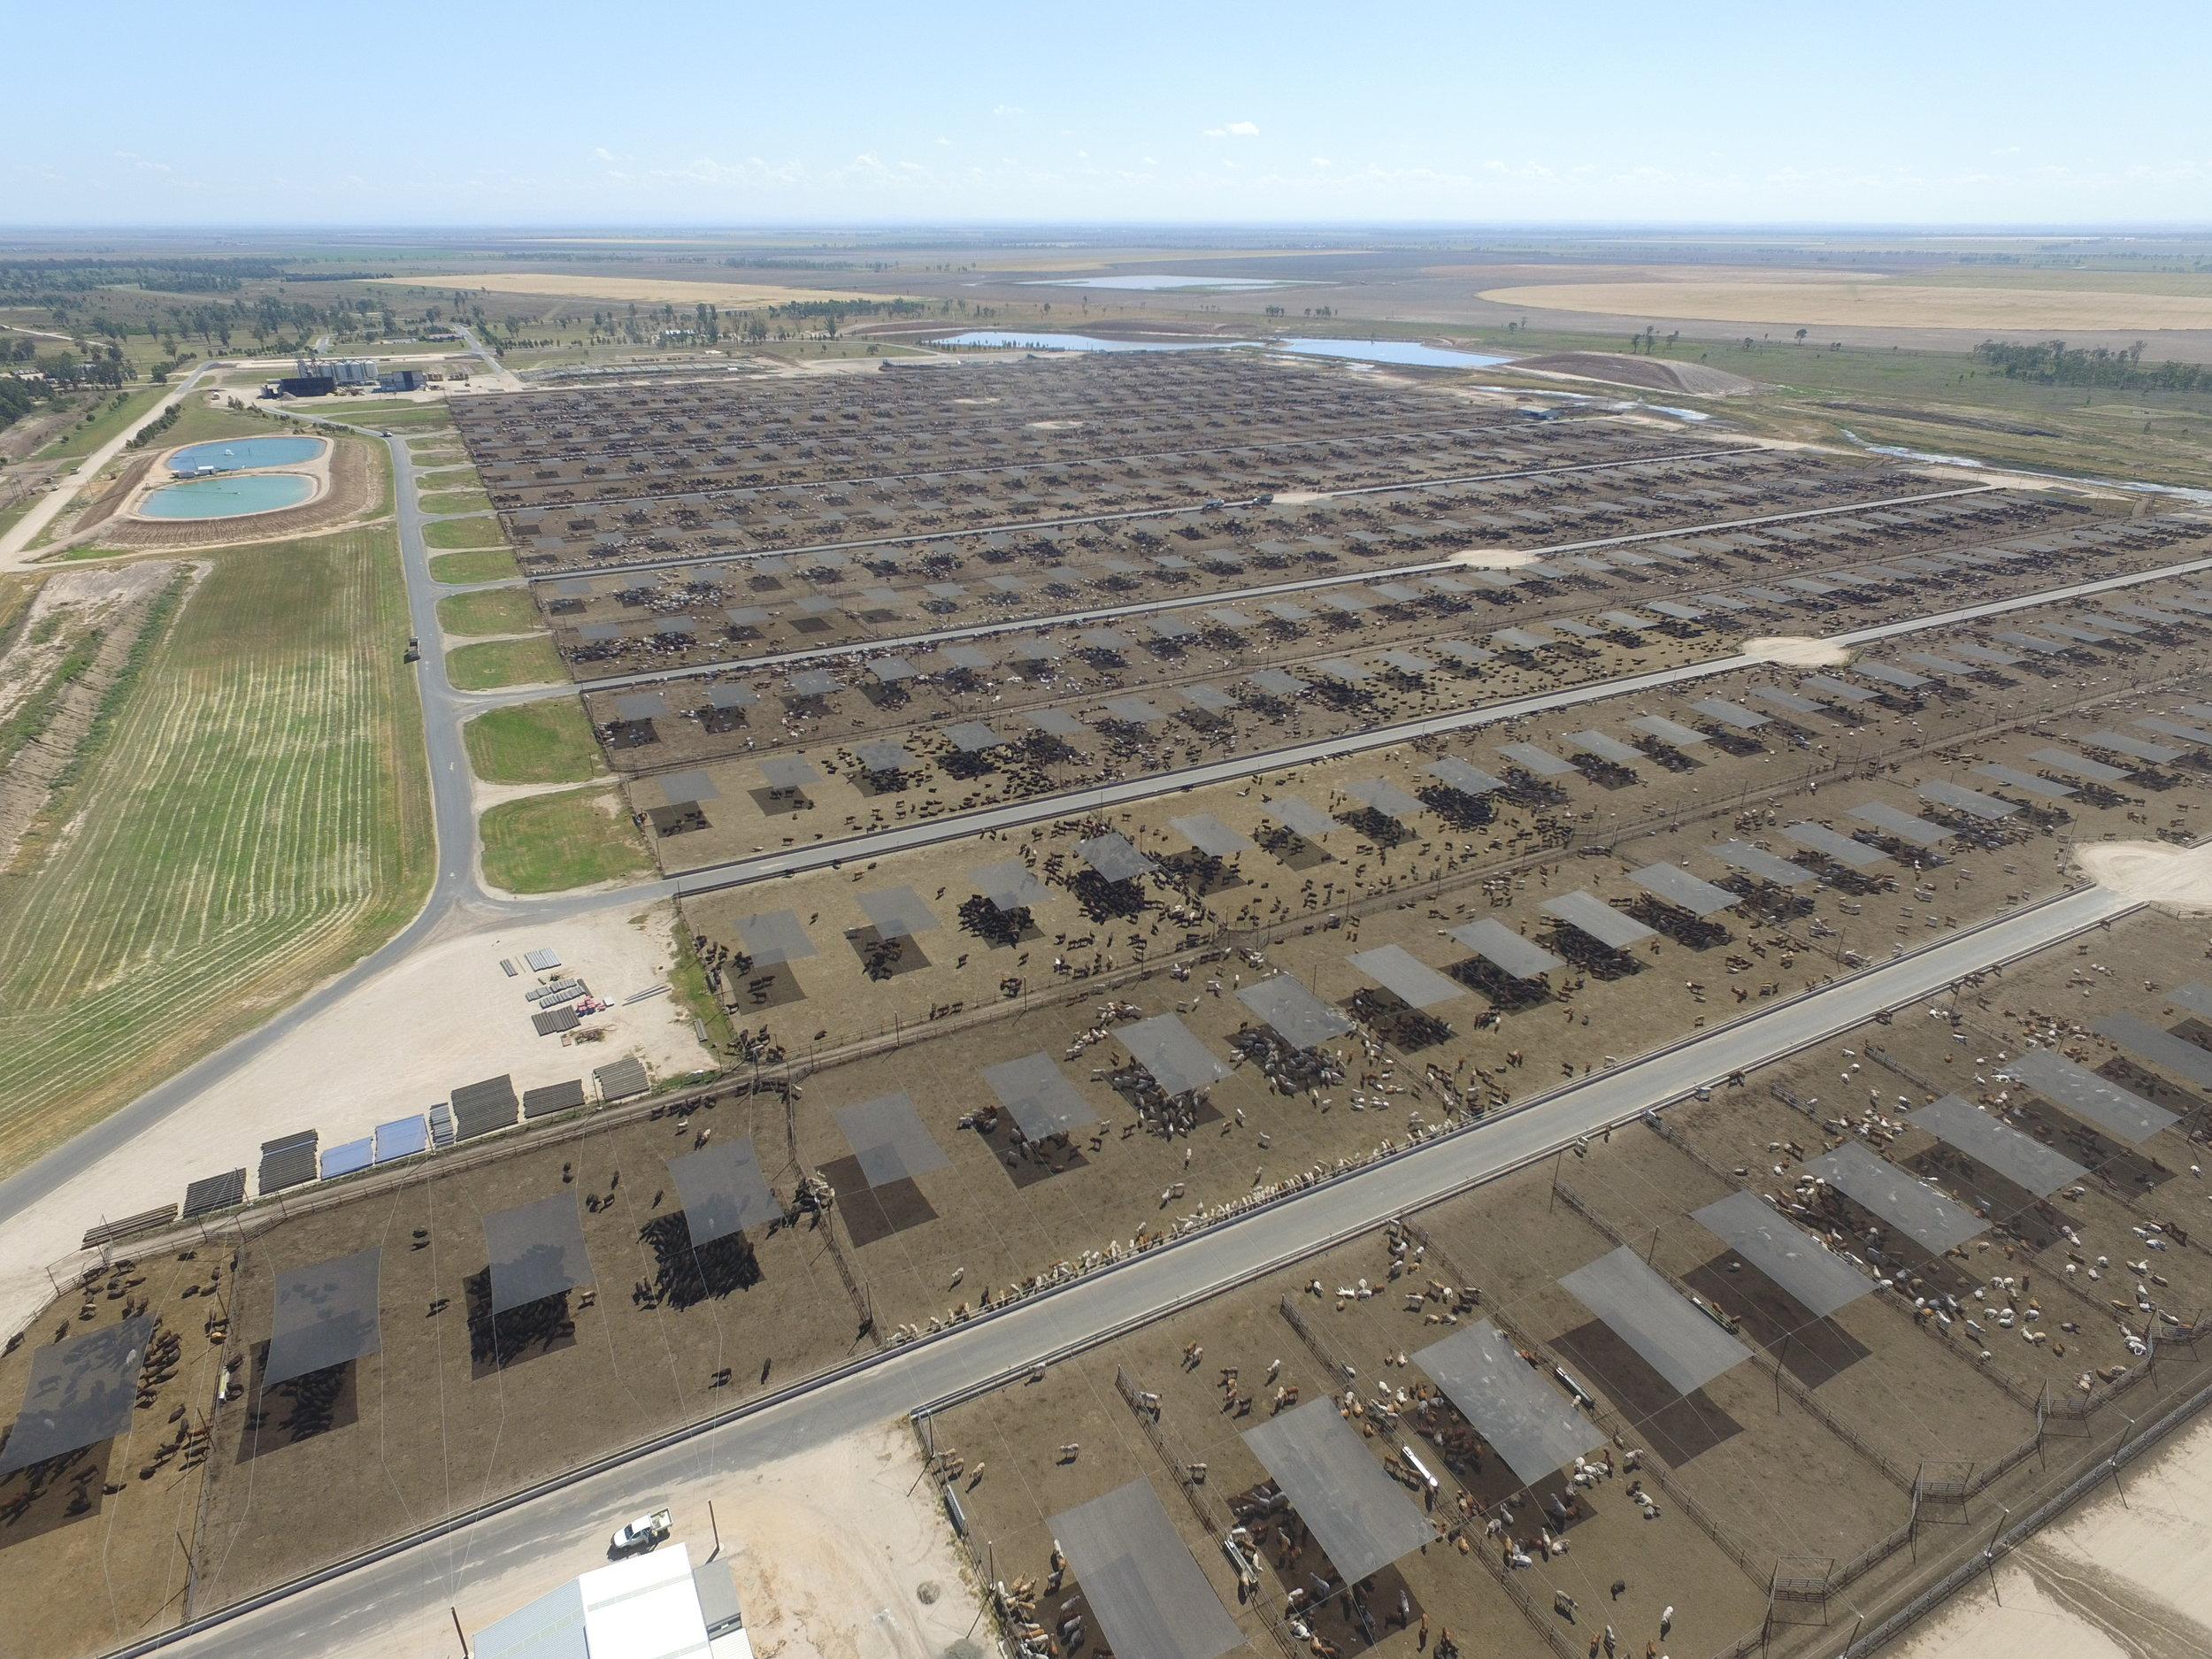 Distance to move cattle is very important in large yards and feedlots